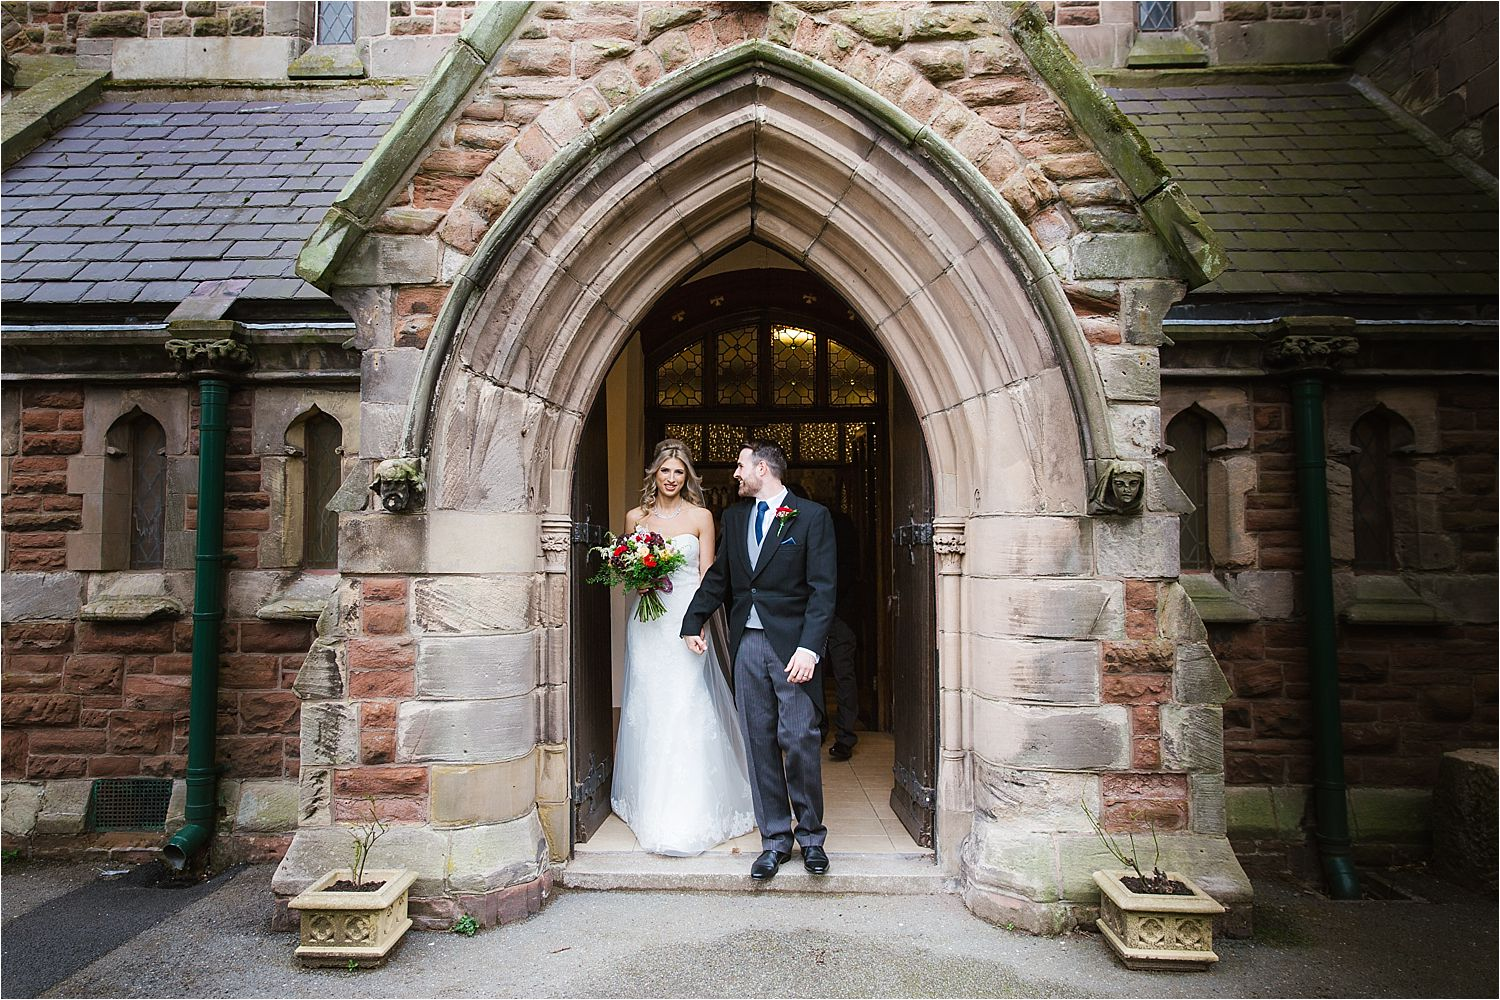 The wedding couple at the church door after their Cumbrian wedding